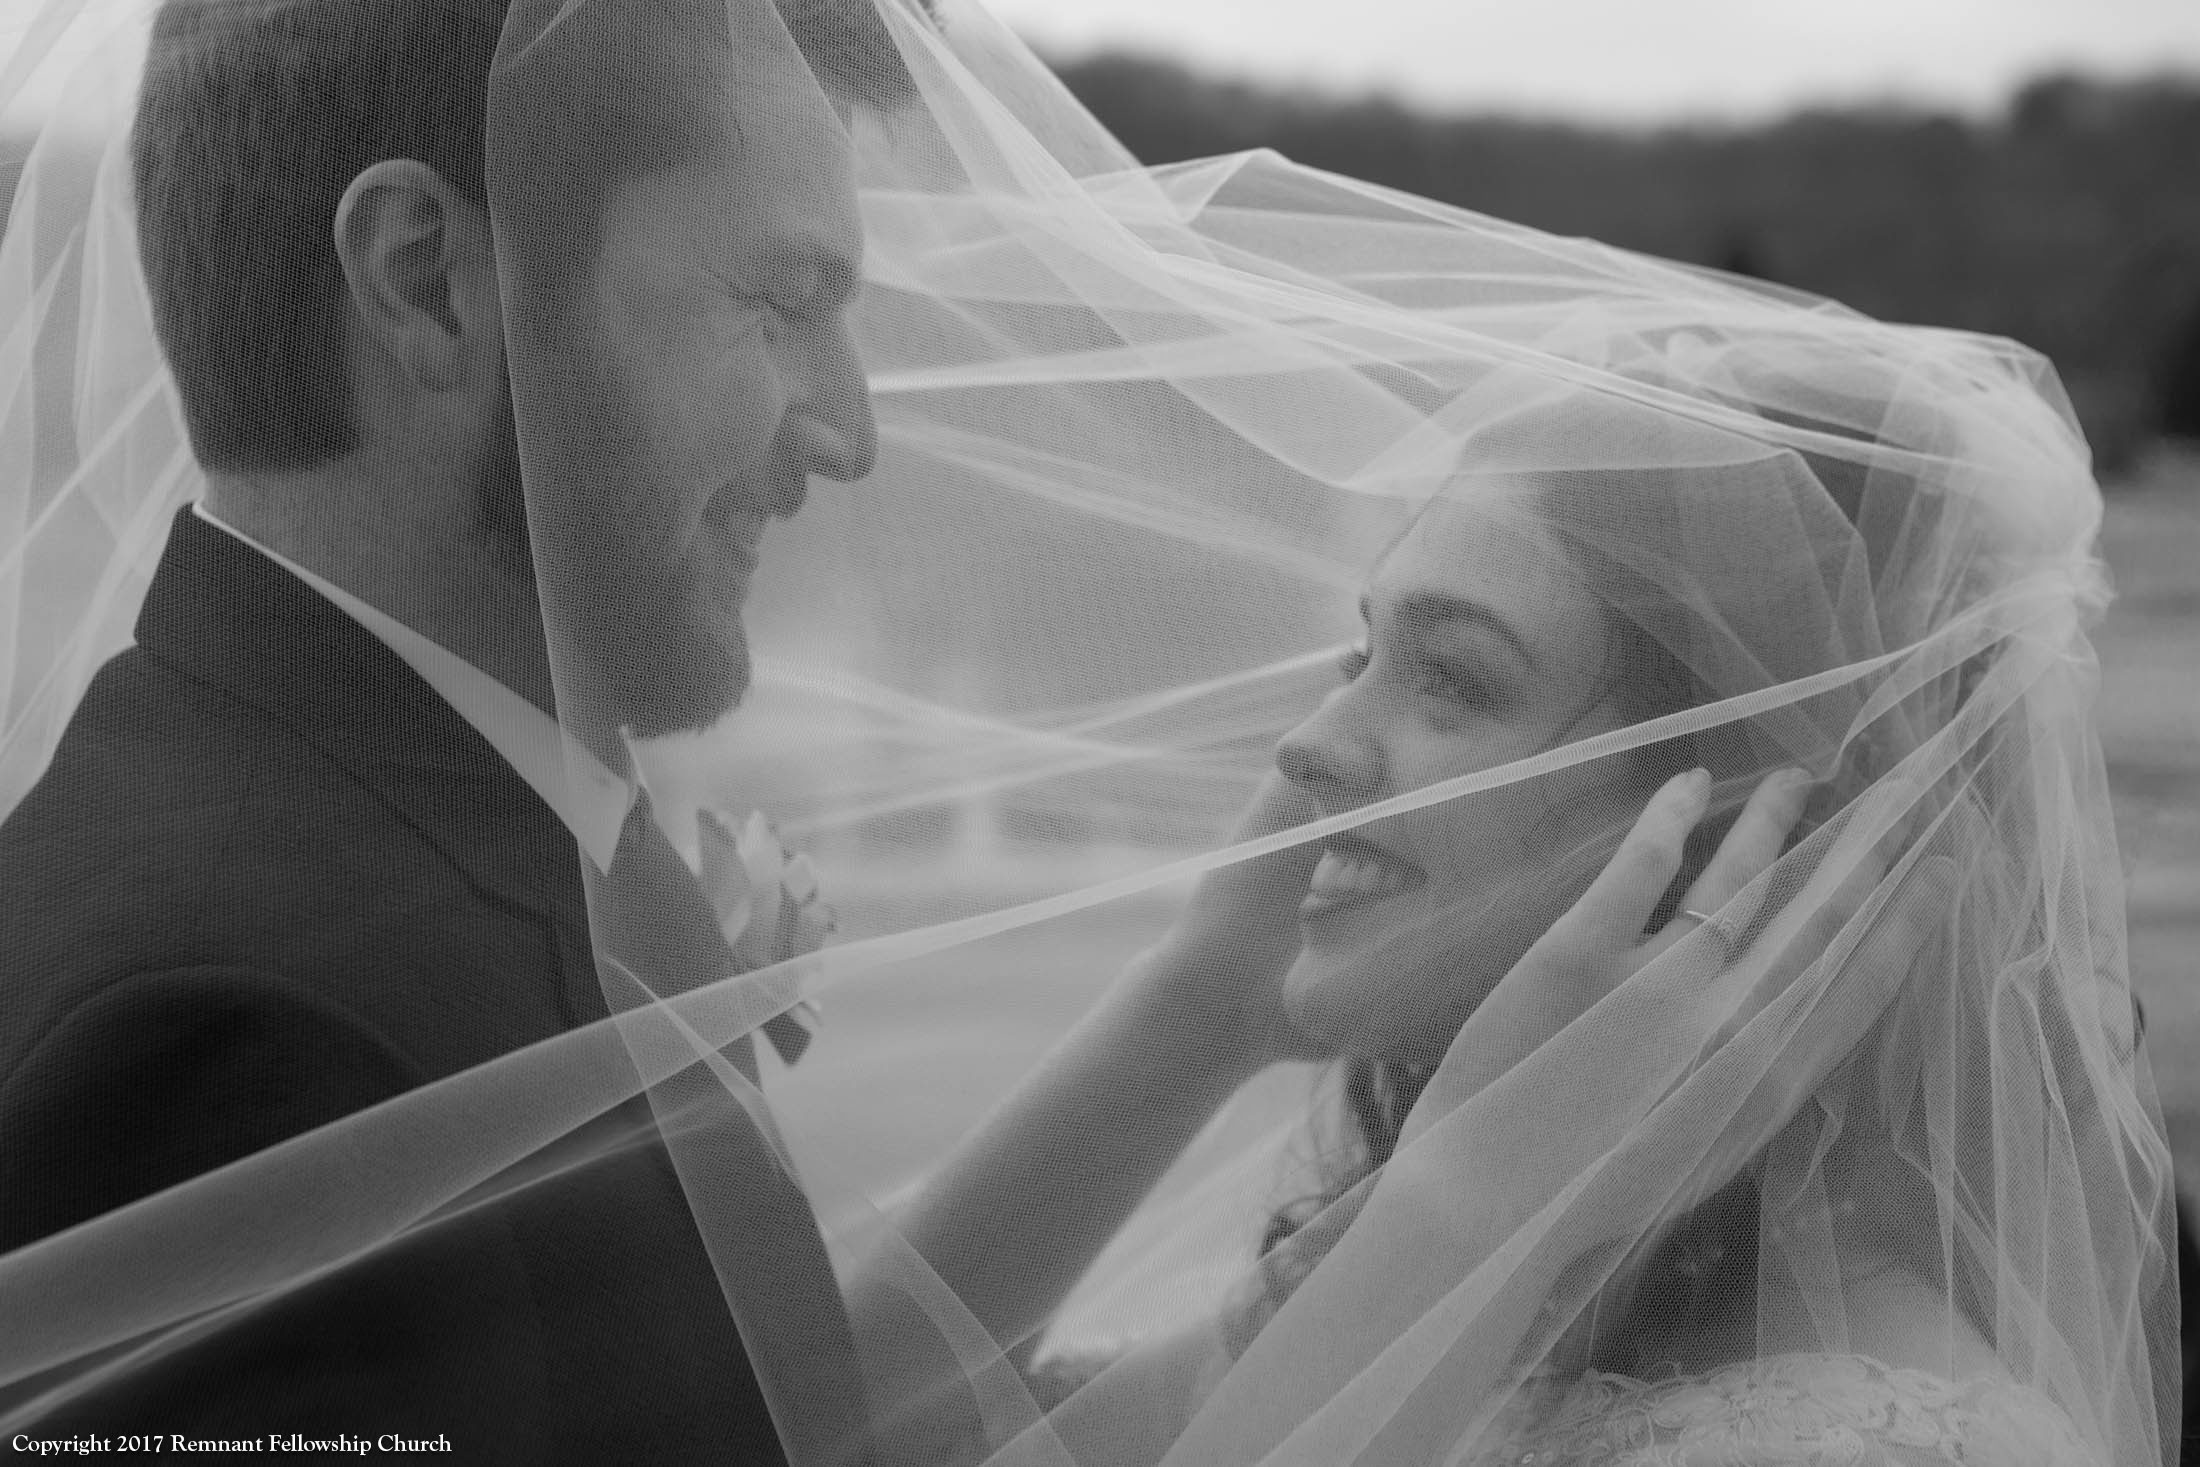 Remnant-Fellowship-Theisen-Wright-Wedding-Bride-Groom-Vail-over-Heads-BW